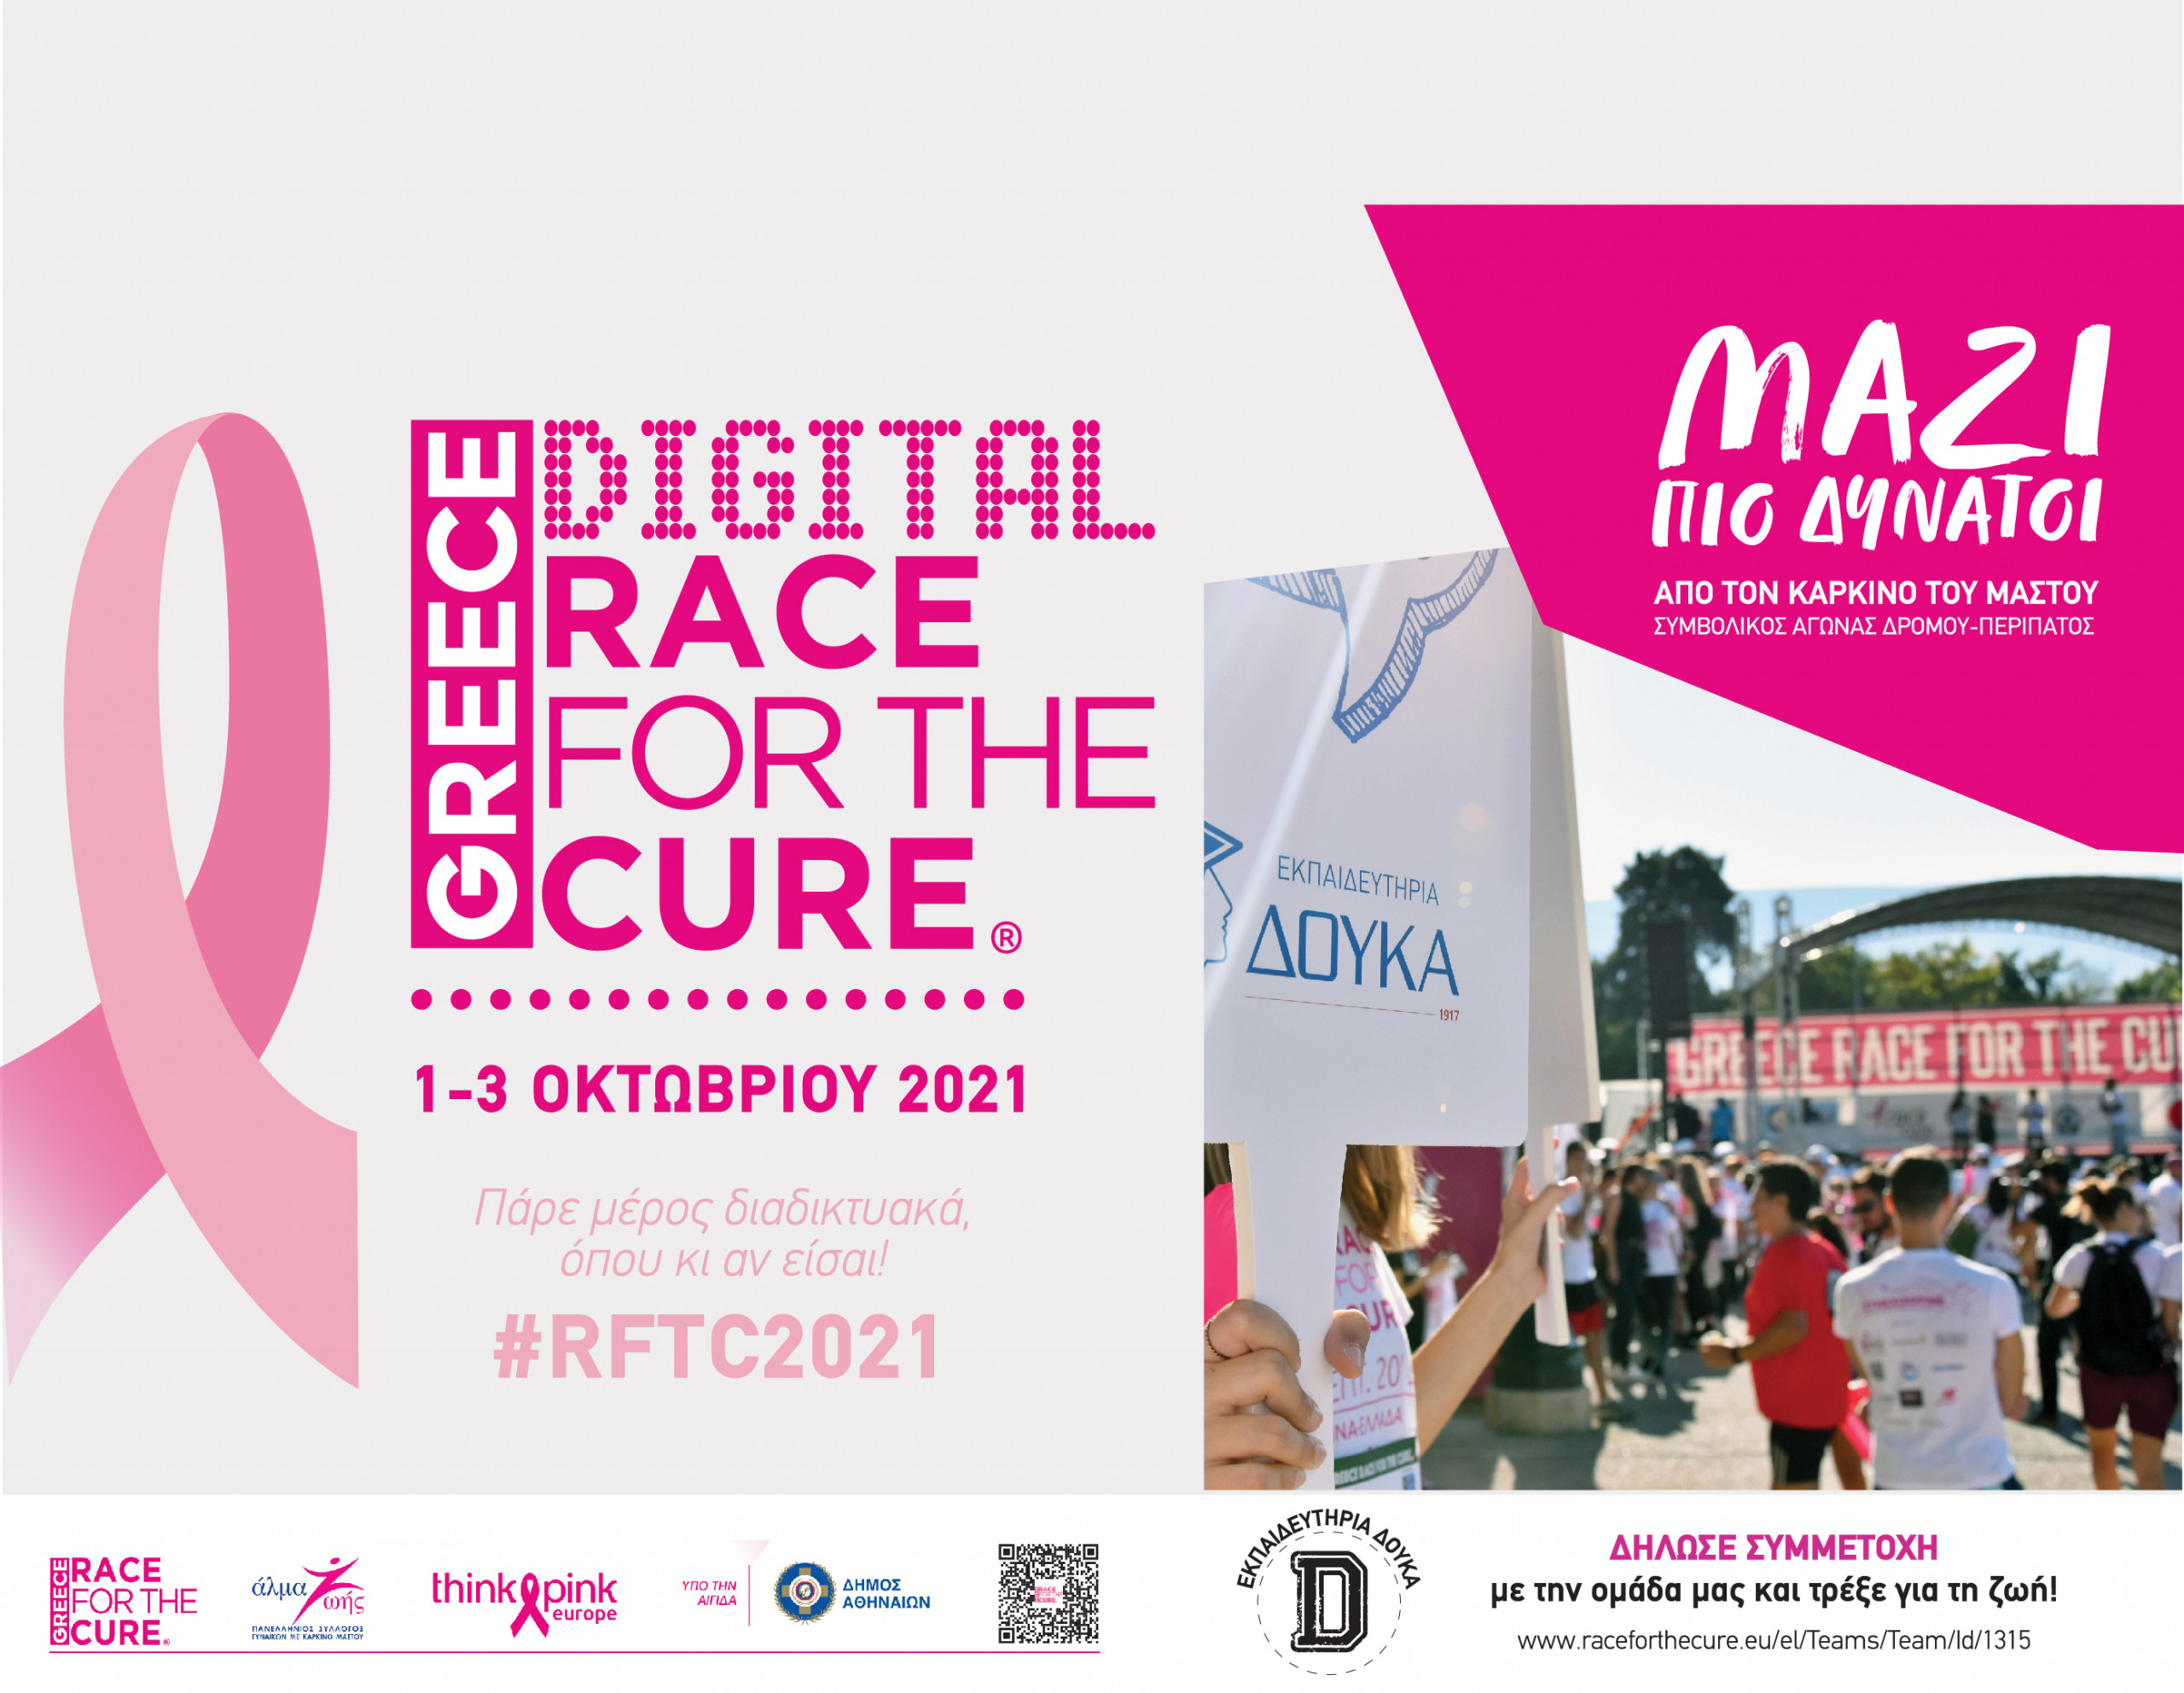 Greece Digital Race for the Cure 2021